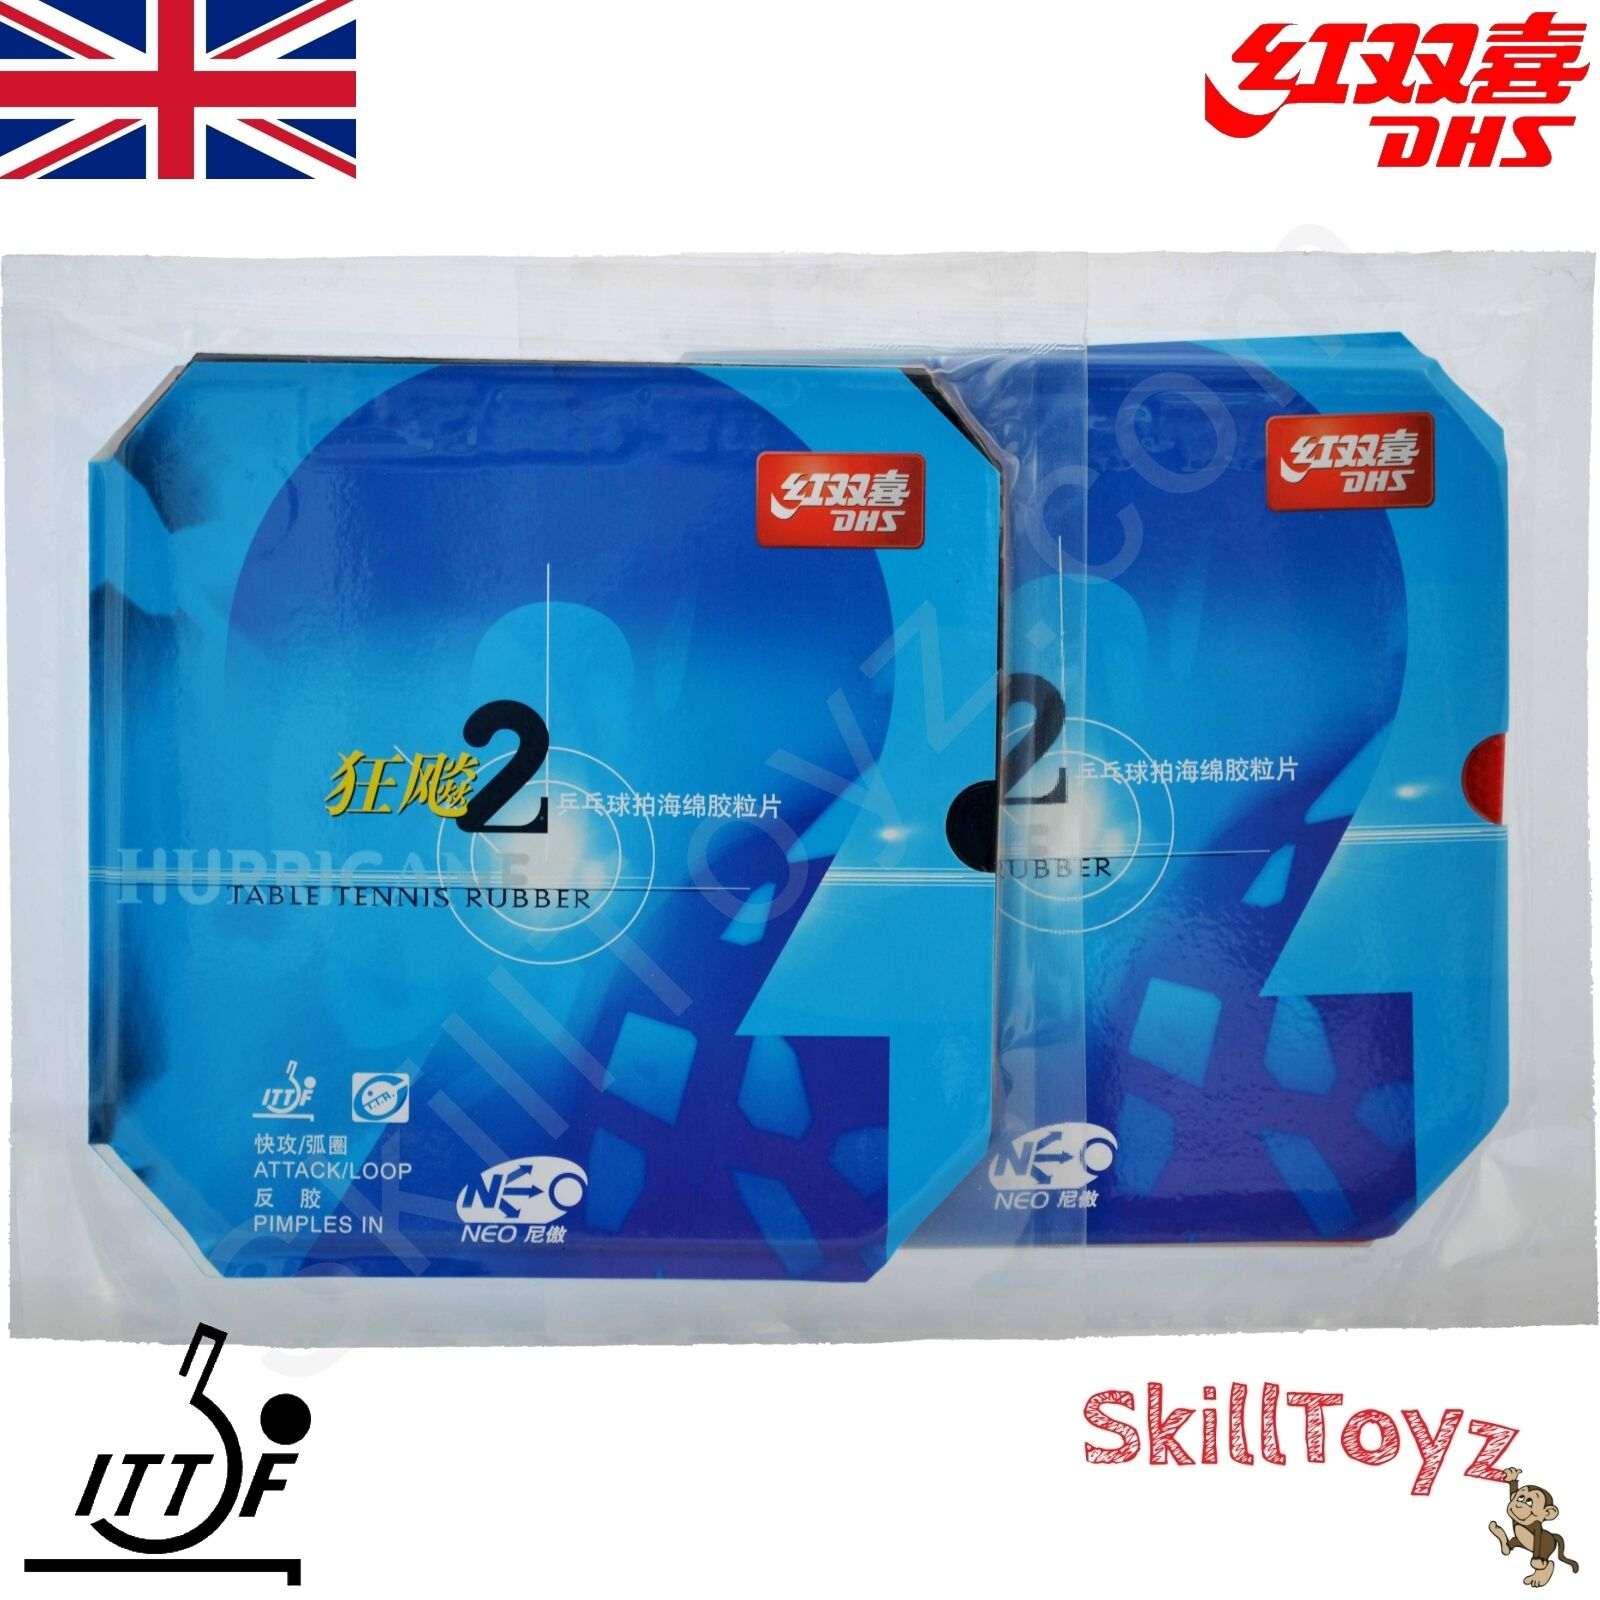 2 x DHS Hurricane 2 NEO ITTF Table Tennis Bat Rubbers UK Seller CHOOSE HARDNESS